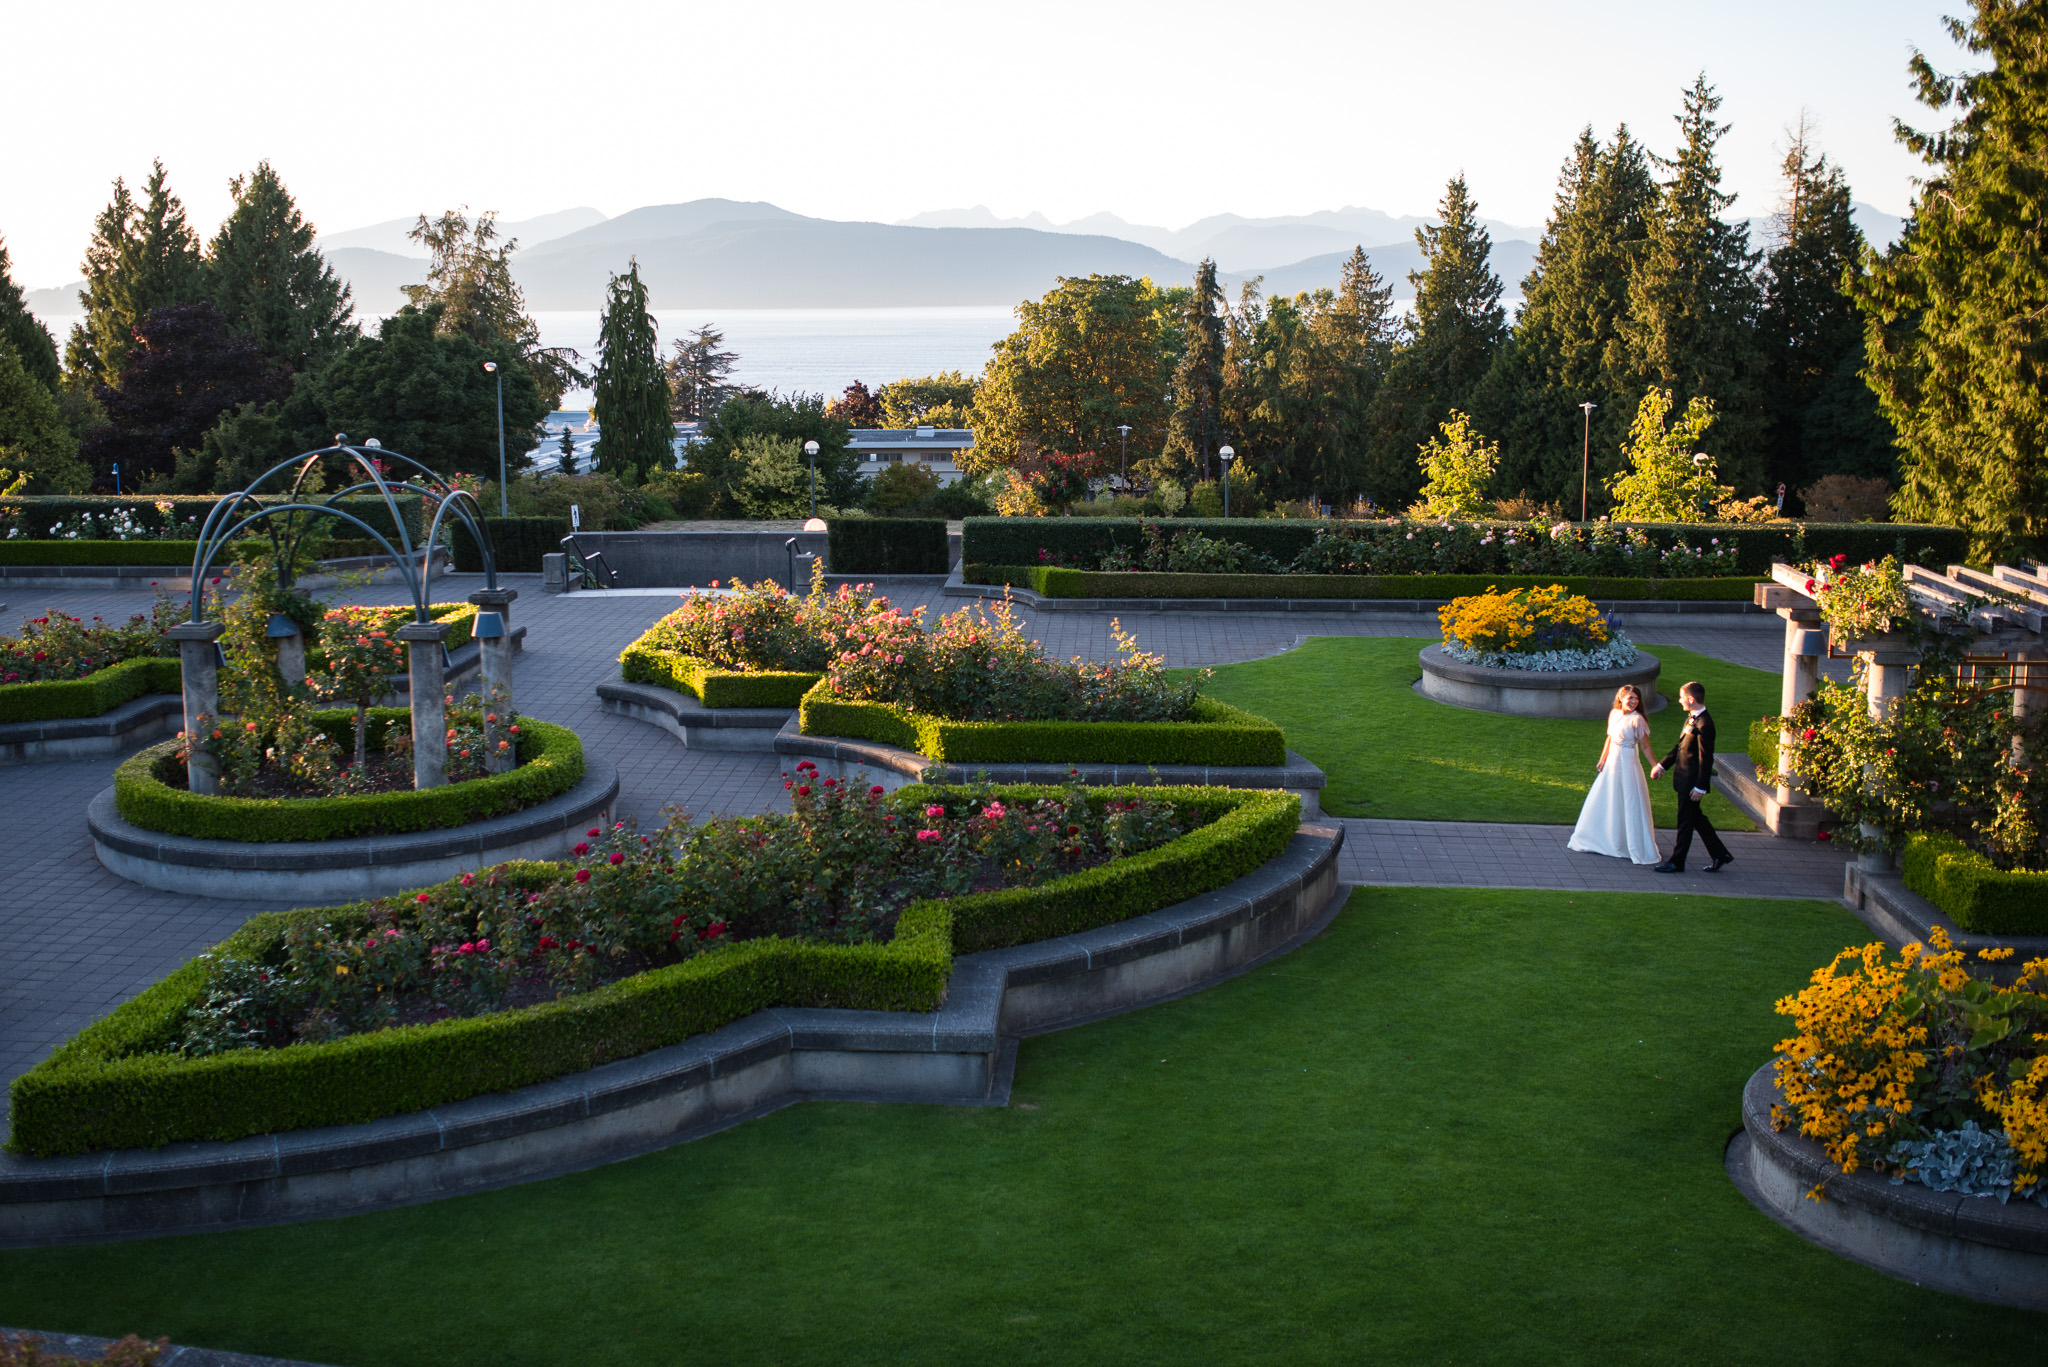 ubc-rose-garden-wedding-sage-bistro-wedding-bc-wedding-photographer-55.jpg